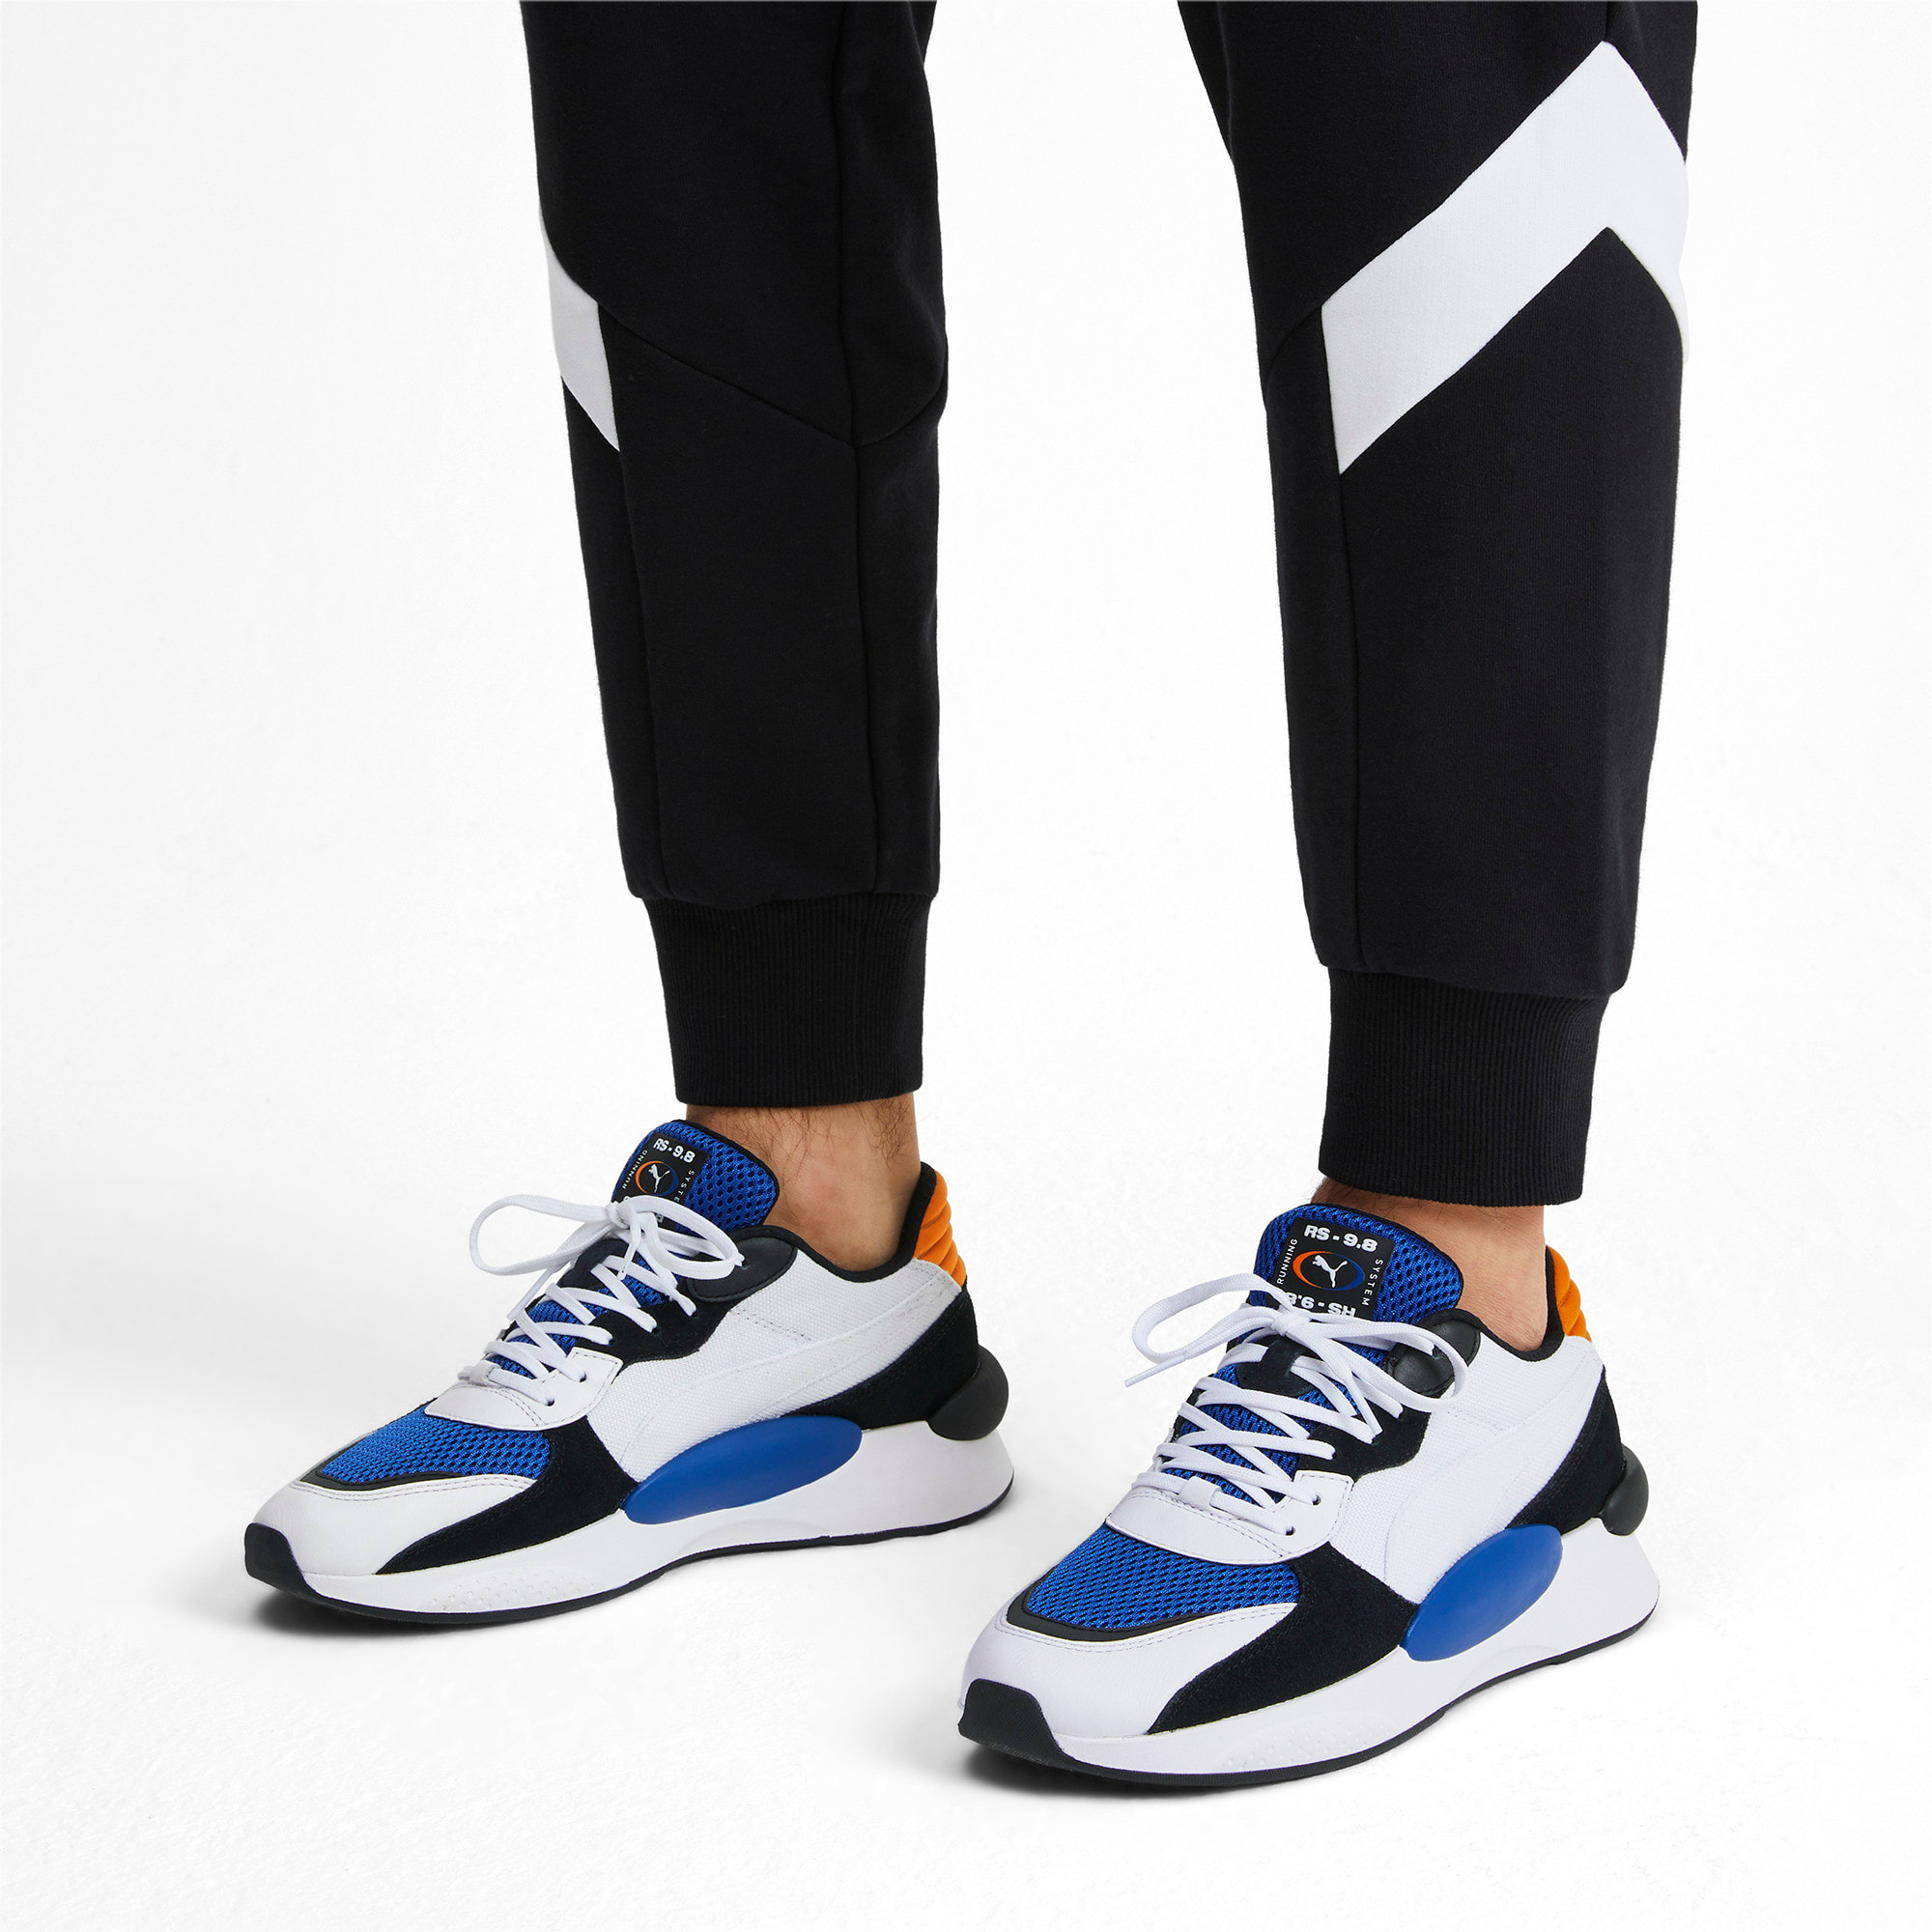 Thumbnail 2 of RS 9.8 Cosmic Sneakers, Puma White-Galaxy Blue, medium